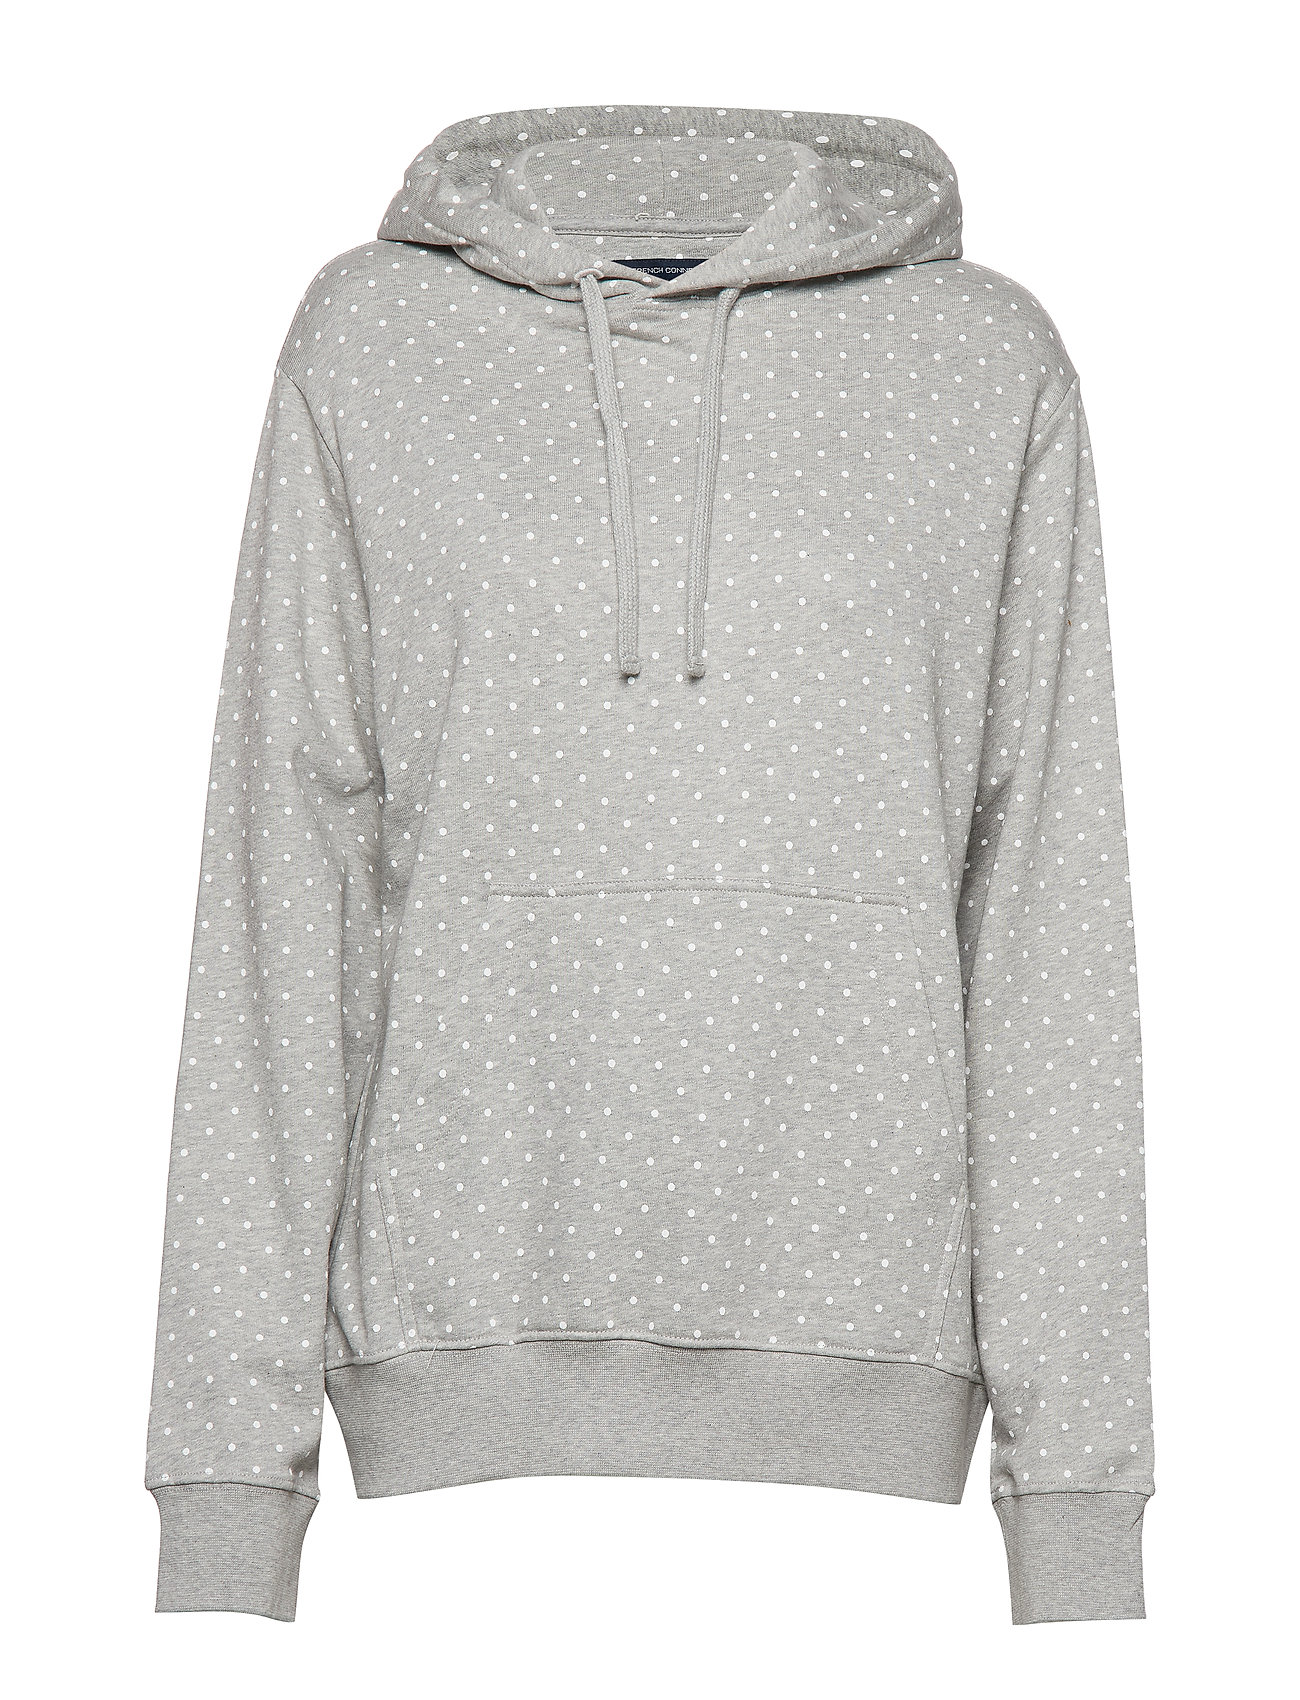 FRENCH CONNECTION Dotted Drawstring Hoodie Jrsy Hoodie Pullover Grau FRENCH CONNECTION